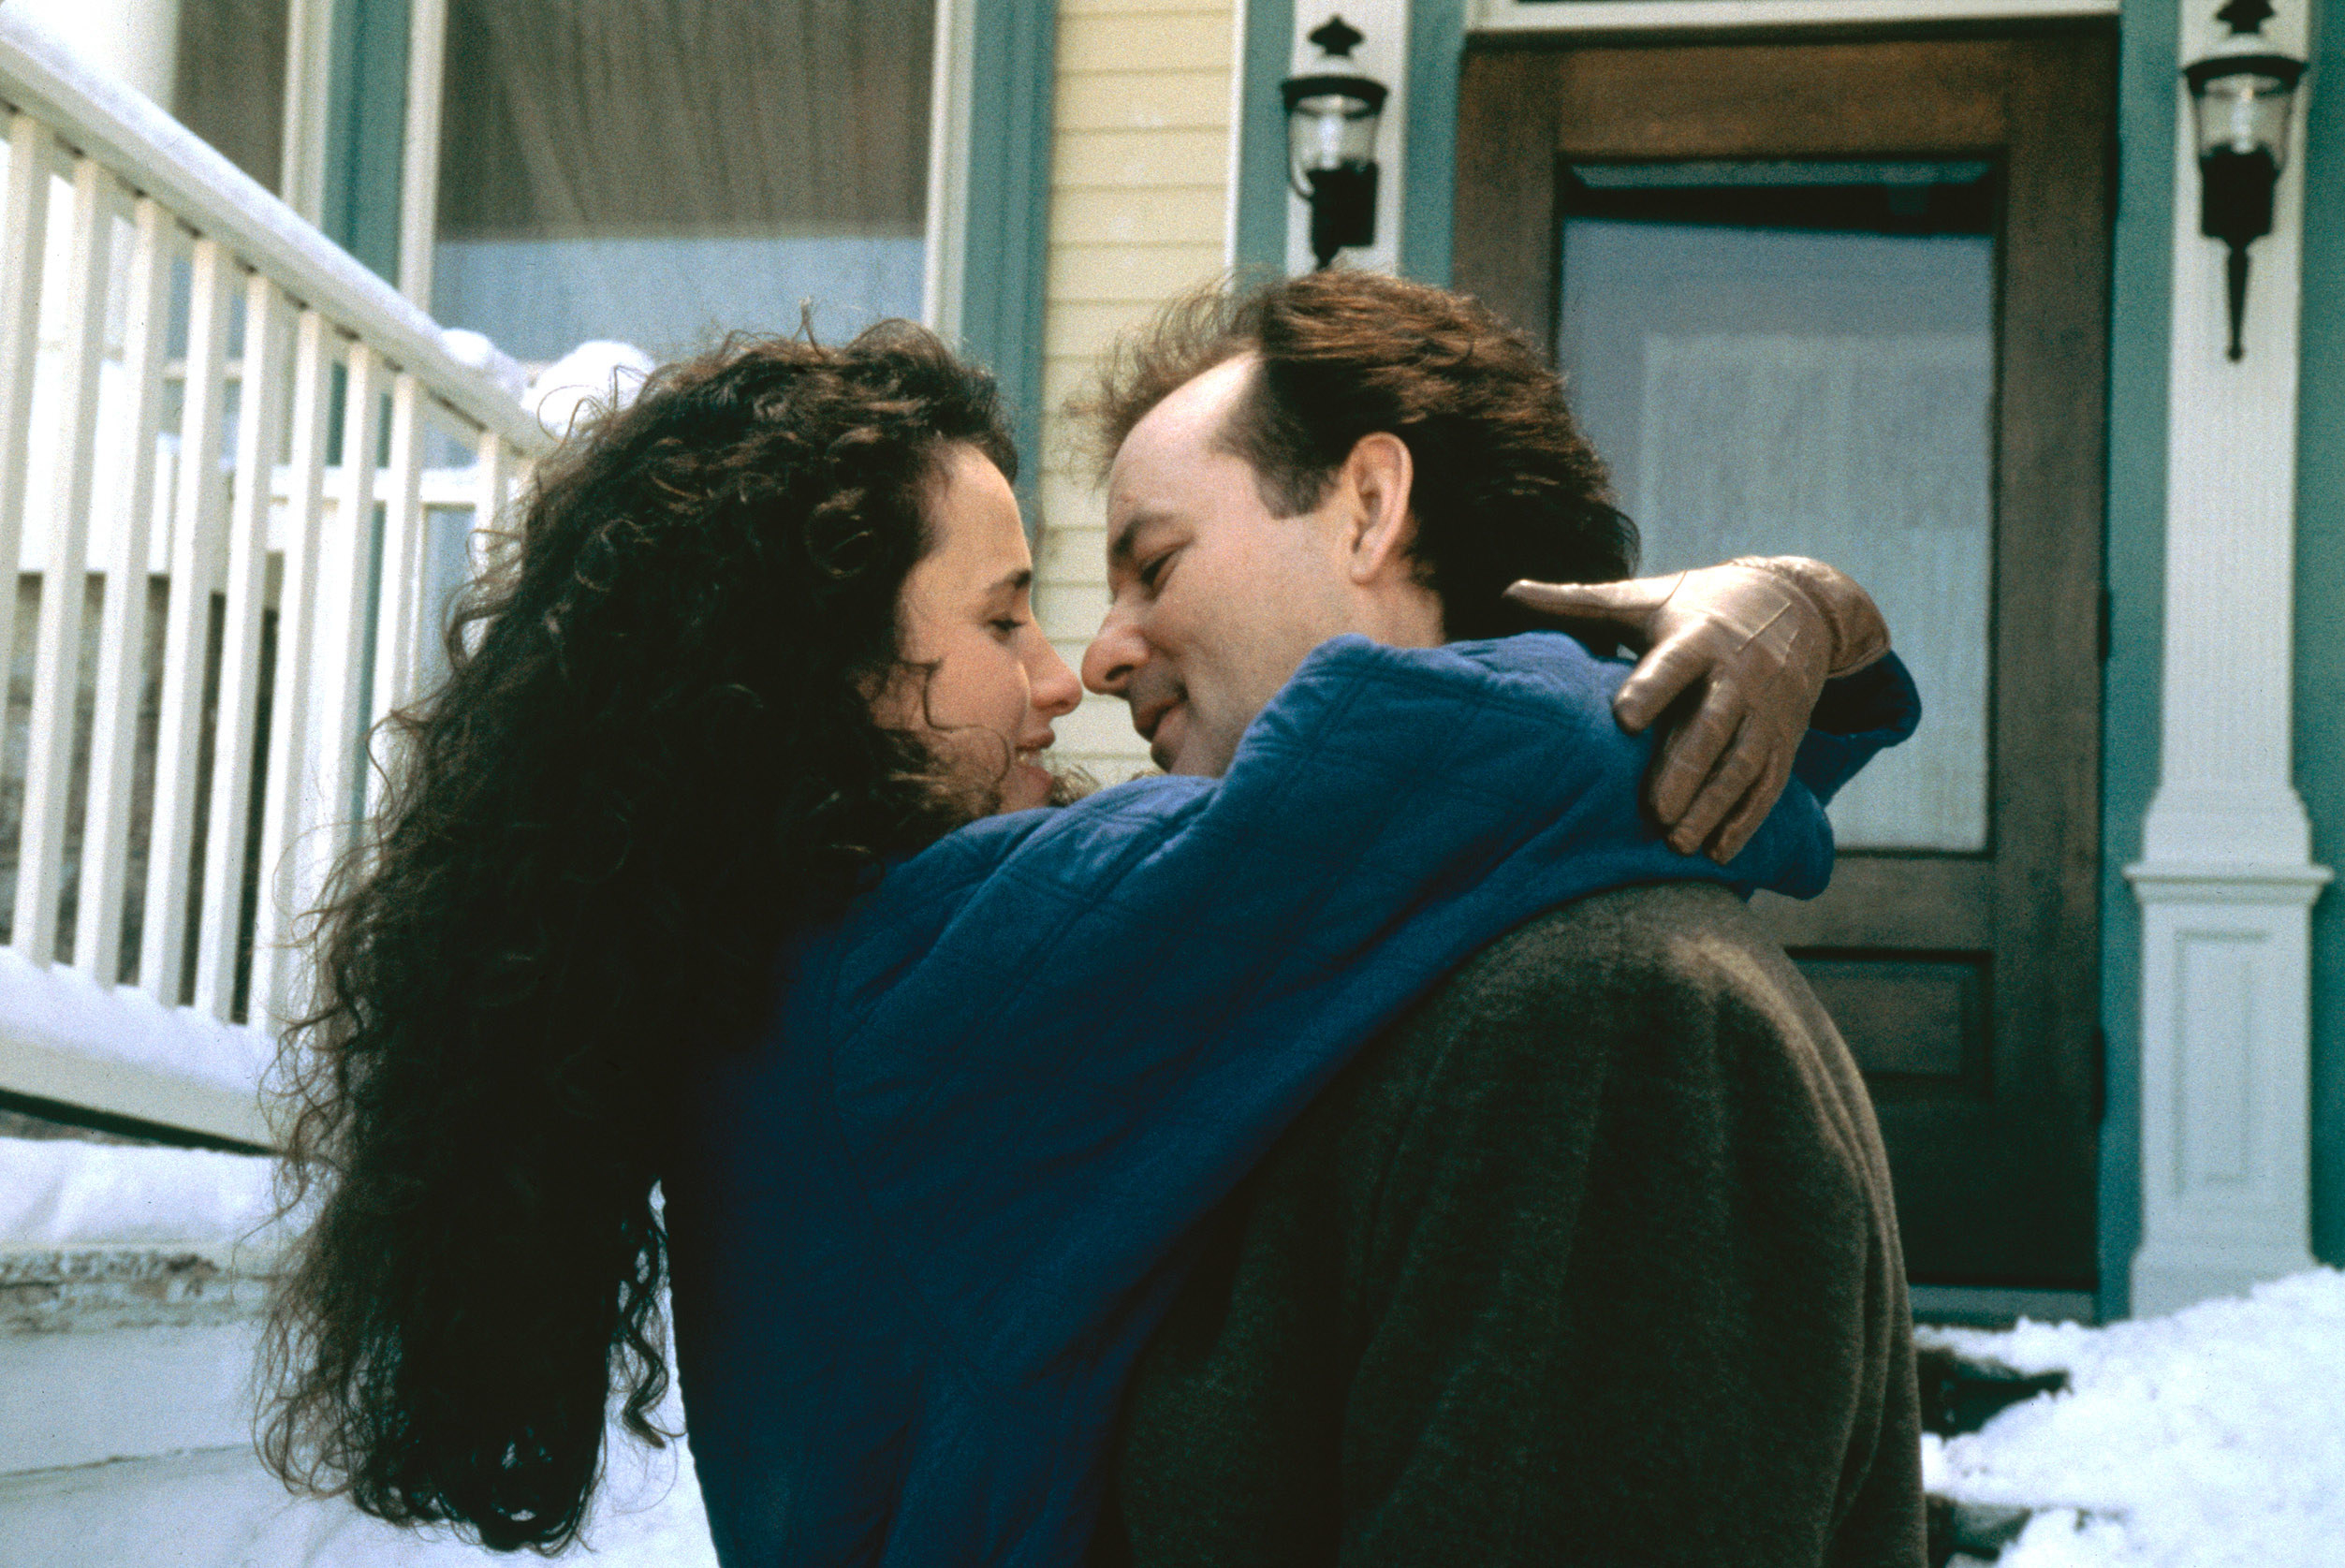 """Andie MacDowell and Bill Murray in a romantic embrace in """"Groundhog Day"""""""